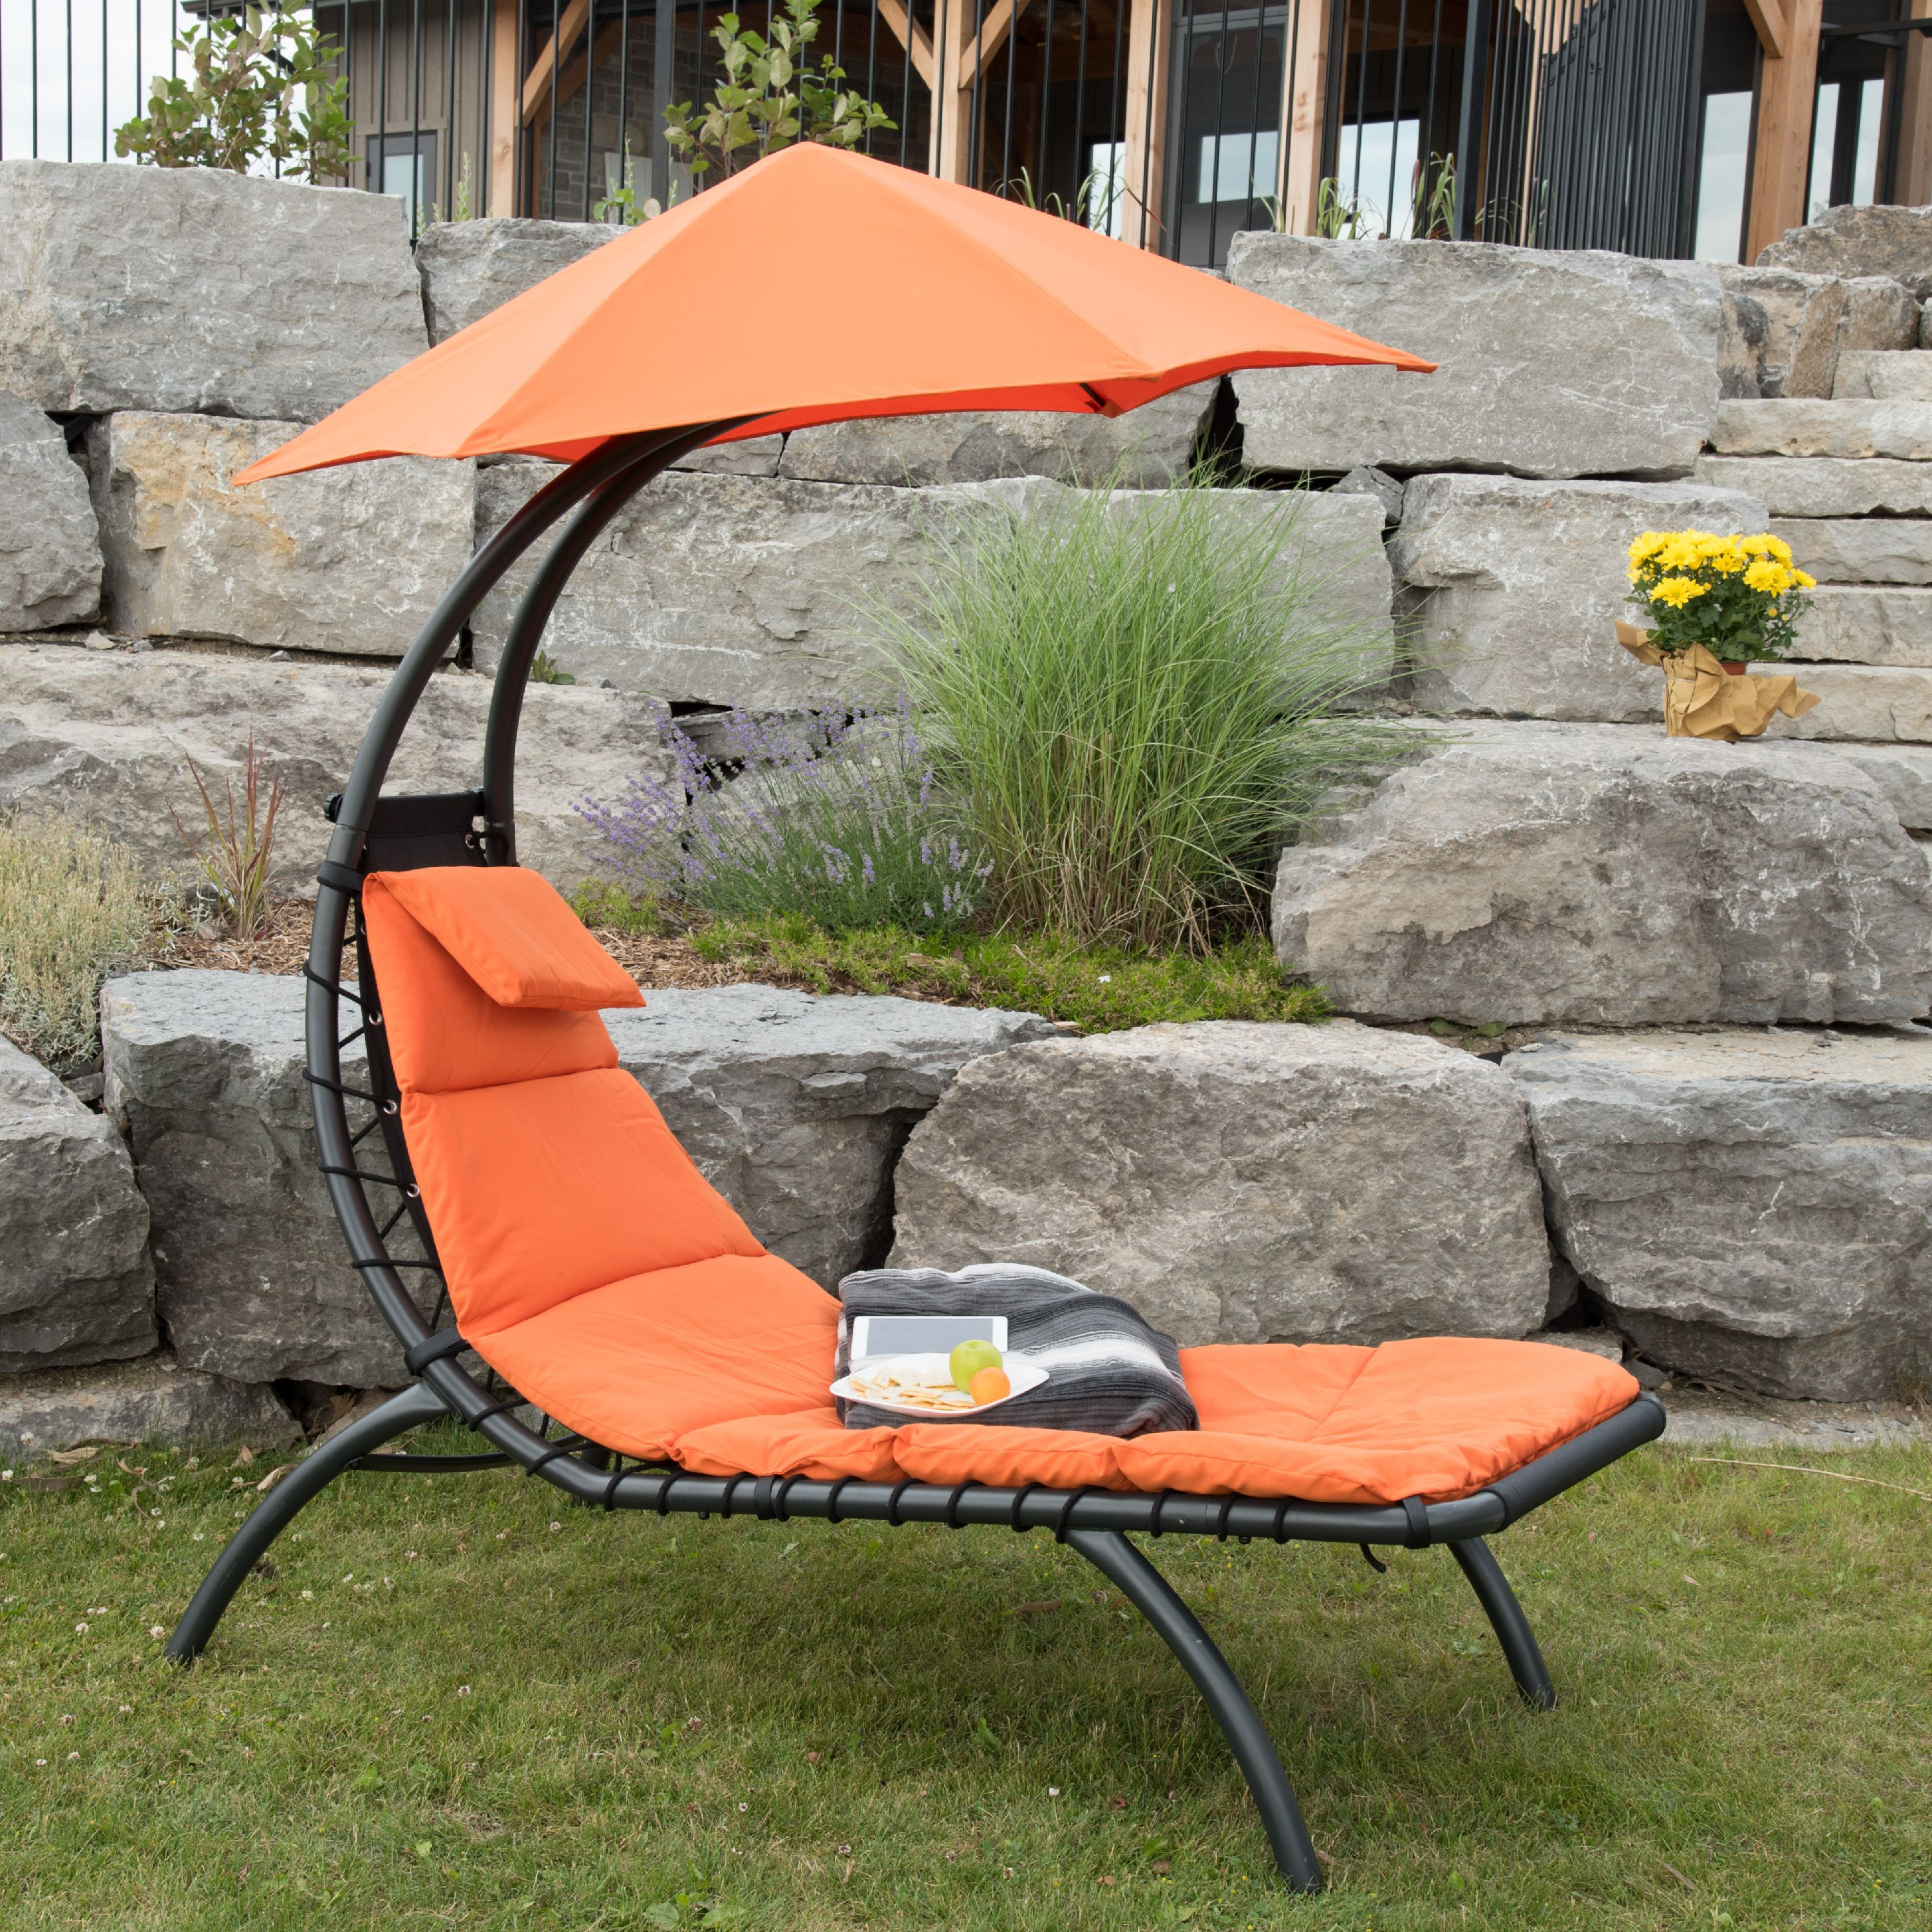 Vivere Hammocks The Original Dream Lounge Chair Hammock